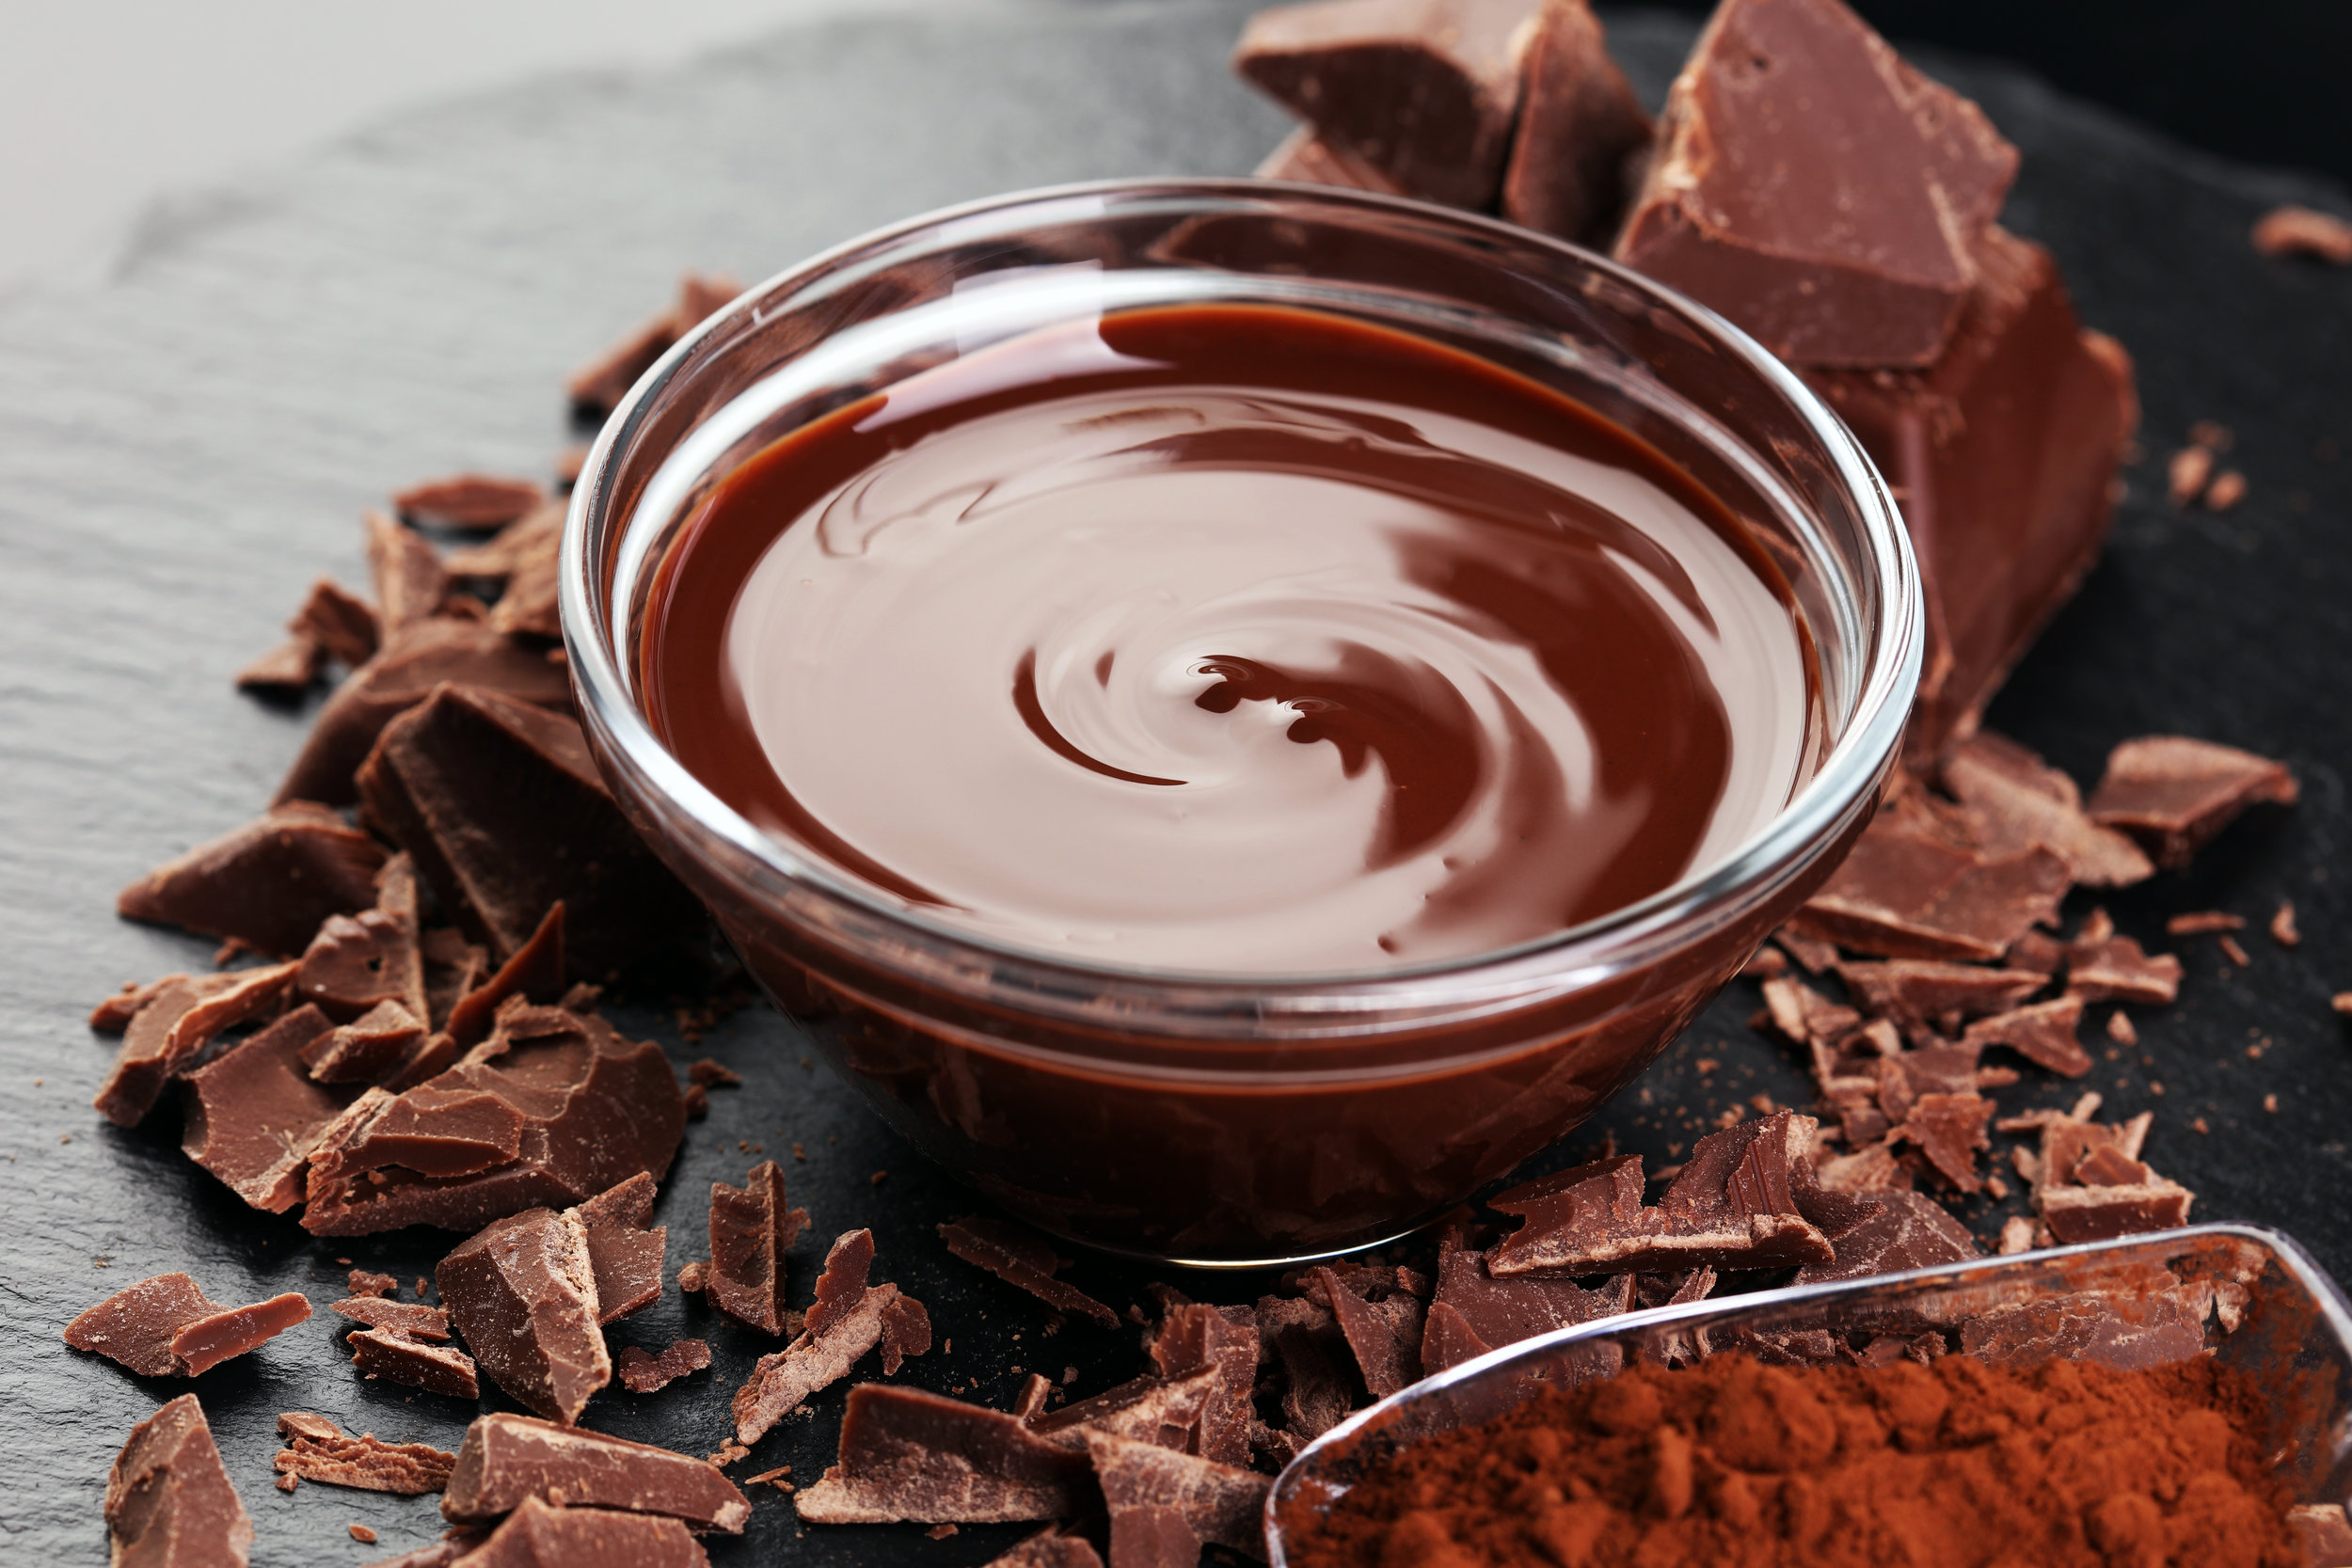 LOW CARB KETO QUICK AND EASY CHOCOLATE SAUCE  RECIPE.jpg